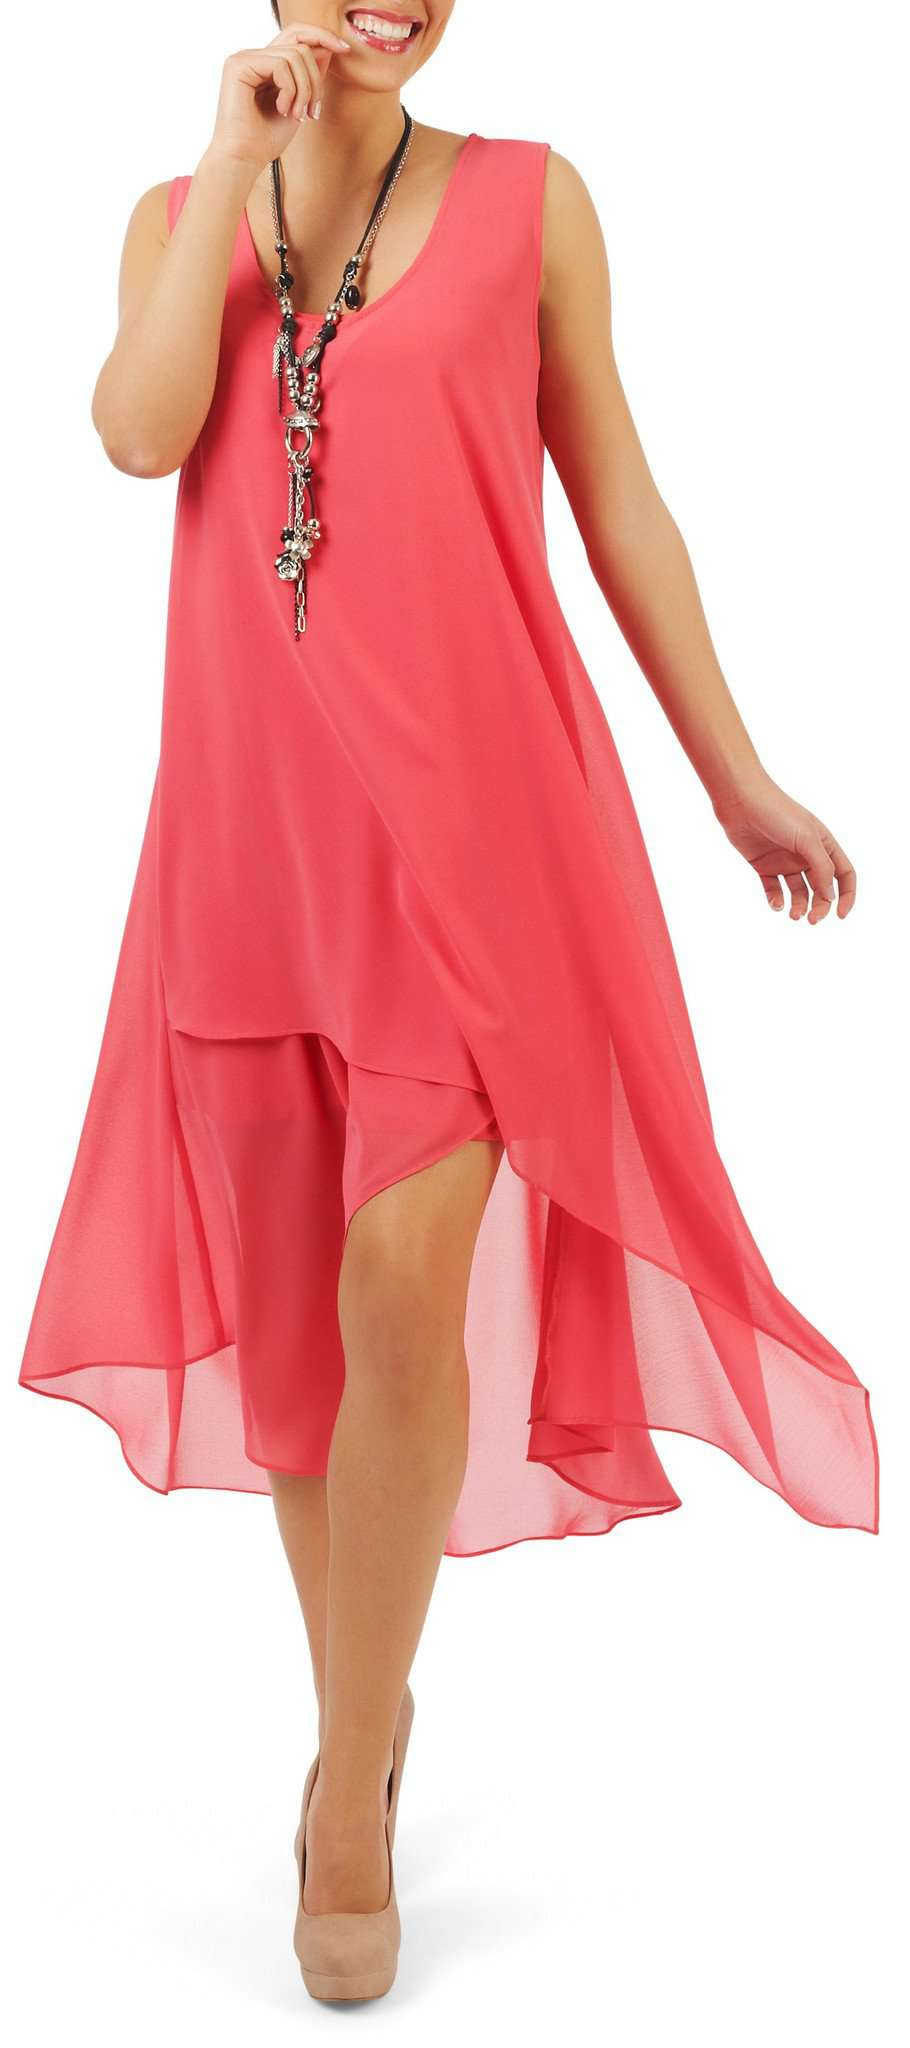 Dress in Coral Chiffon-Quality Design and Great Fit-Guaranteed By Designer Yvonne Marie-Made in Canada-Limited Designs-Be Unique and By Quality for Your Special Event - Yvonne Marie